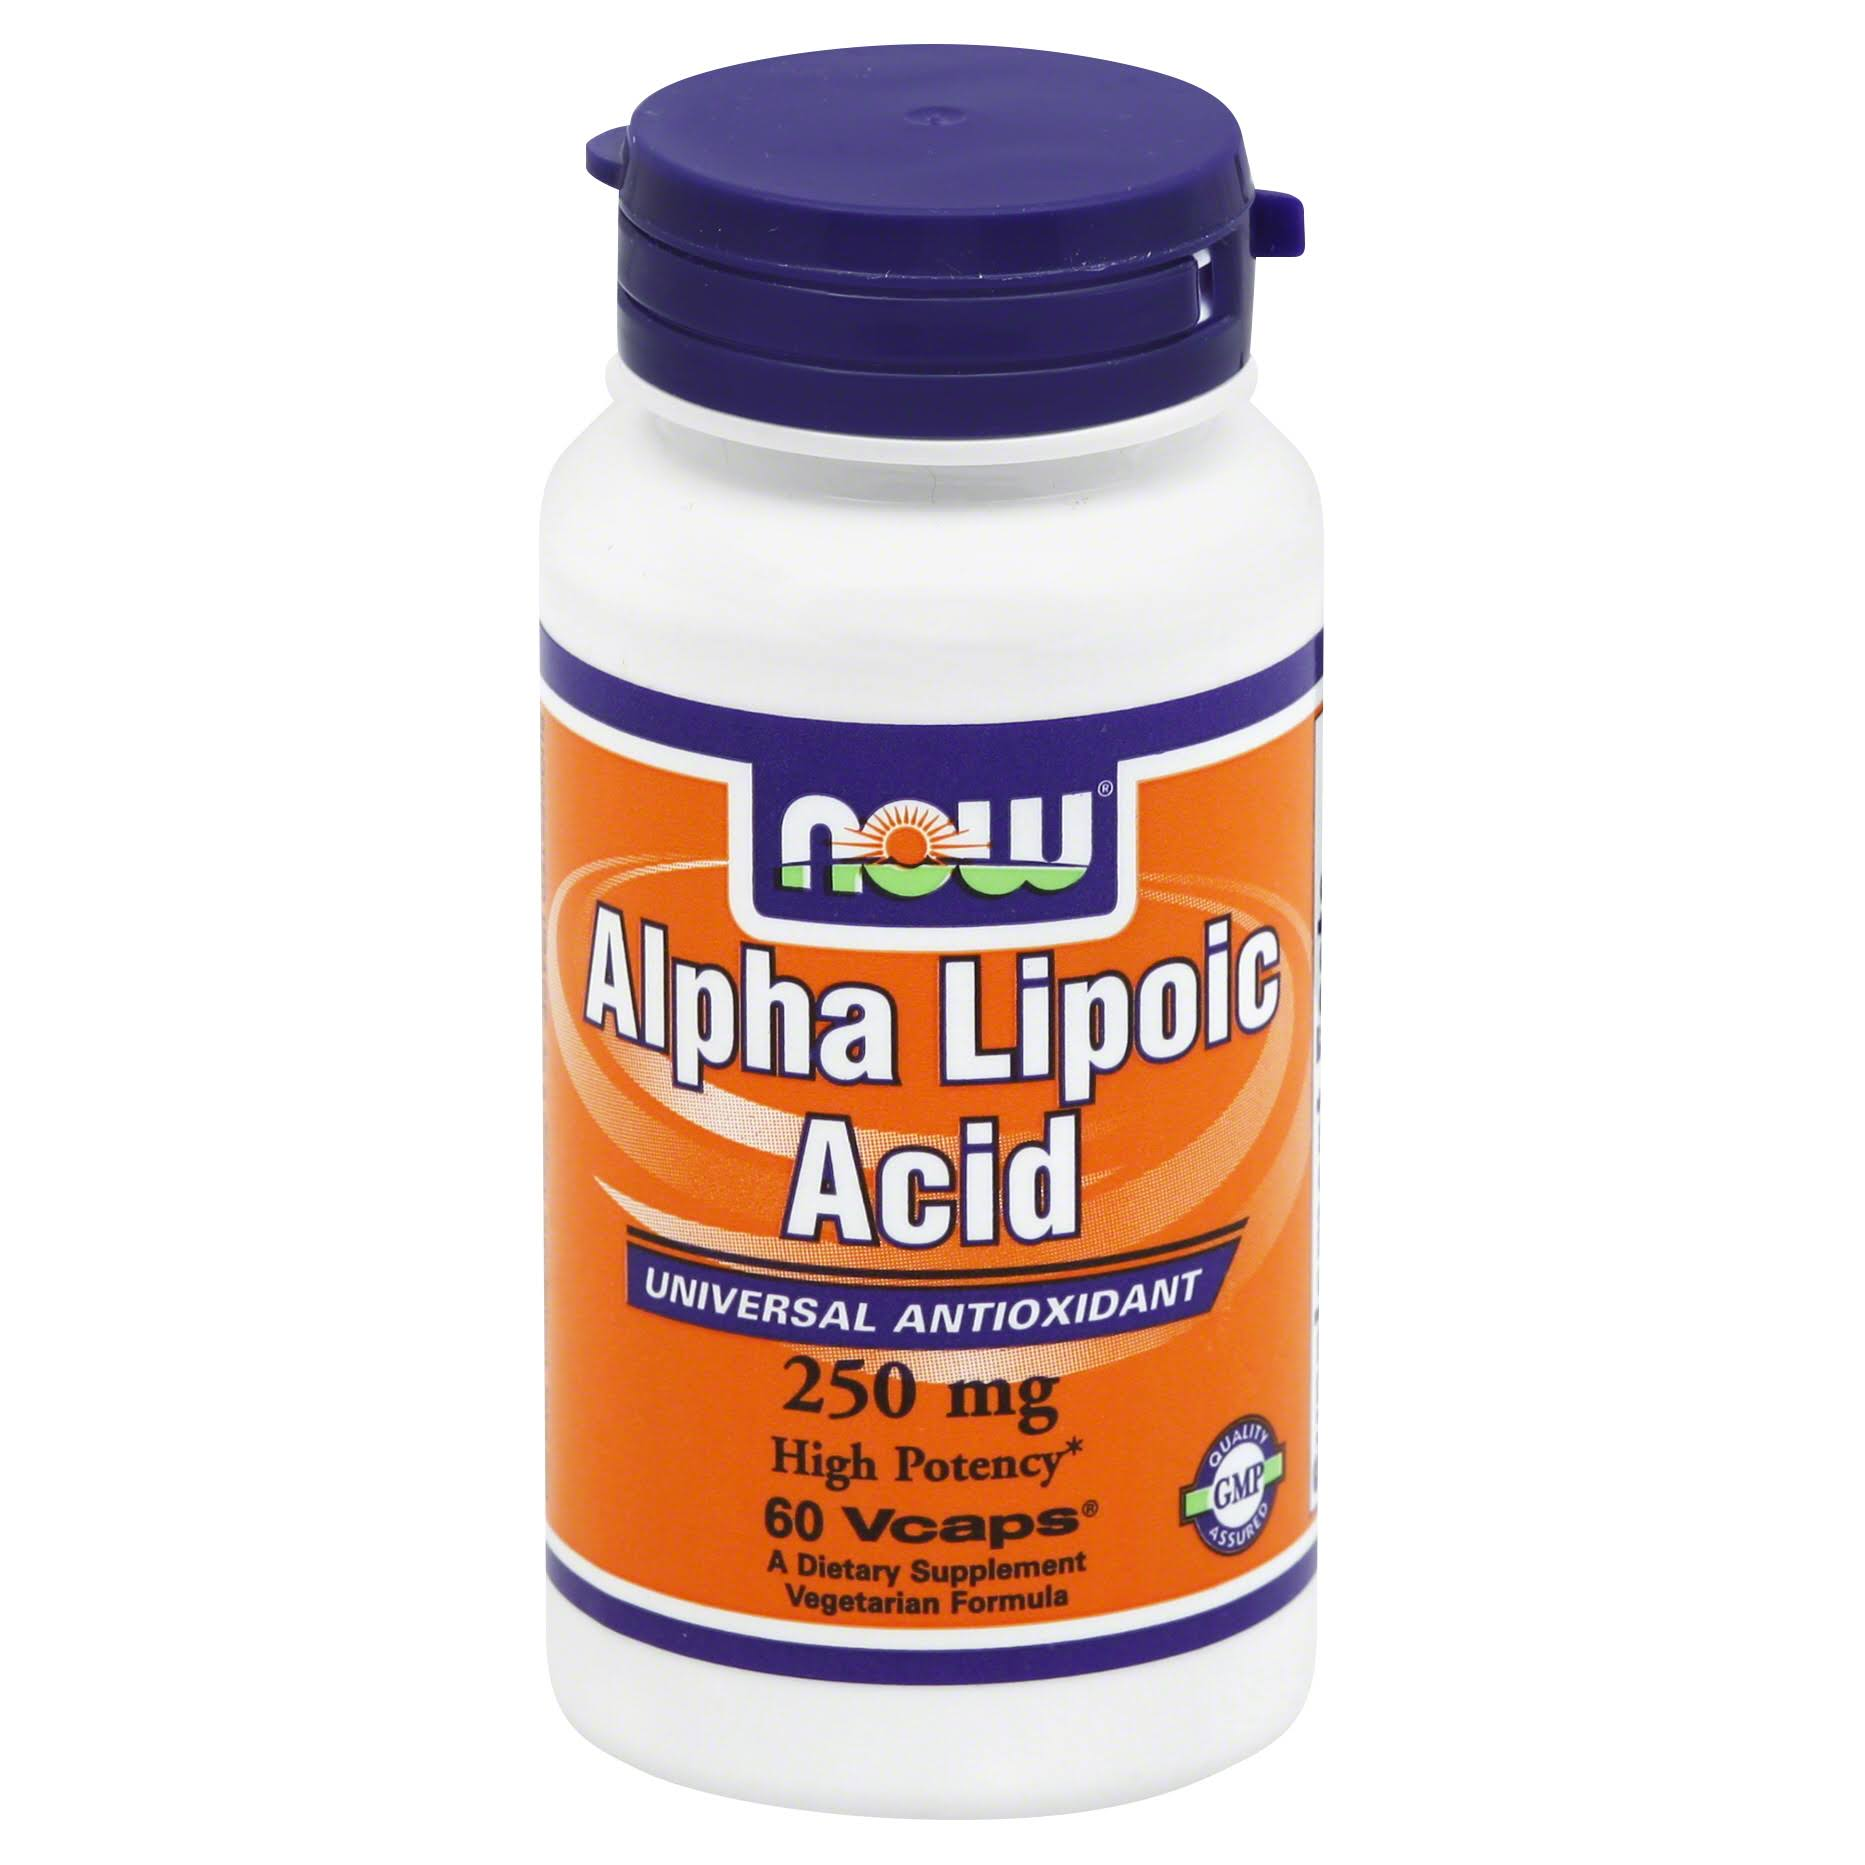 NOW Foods Alpha Lipoic Acid - 60 Vcaps, 250mg